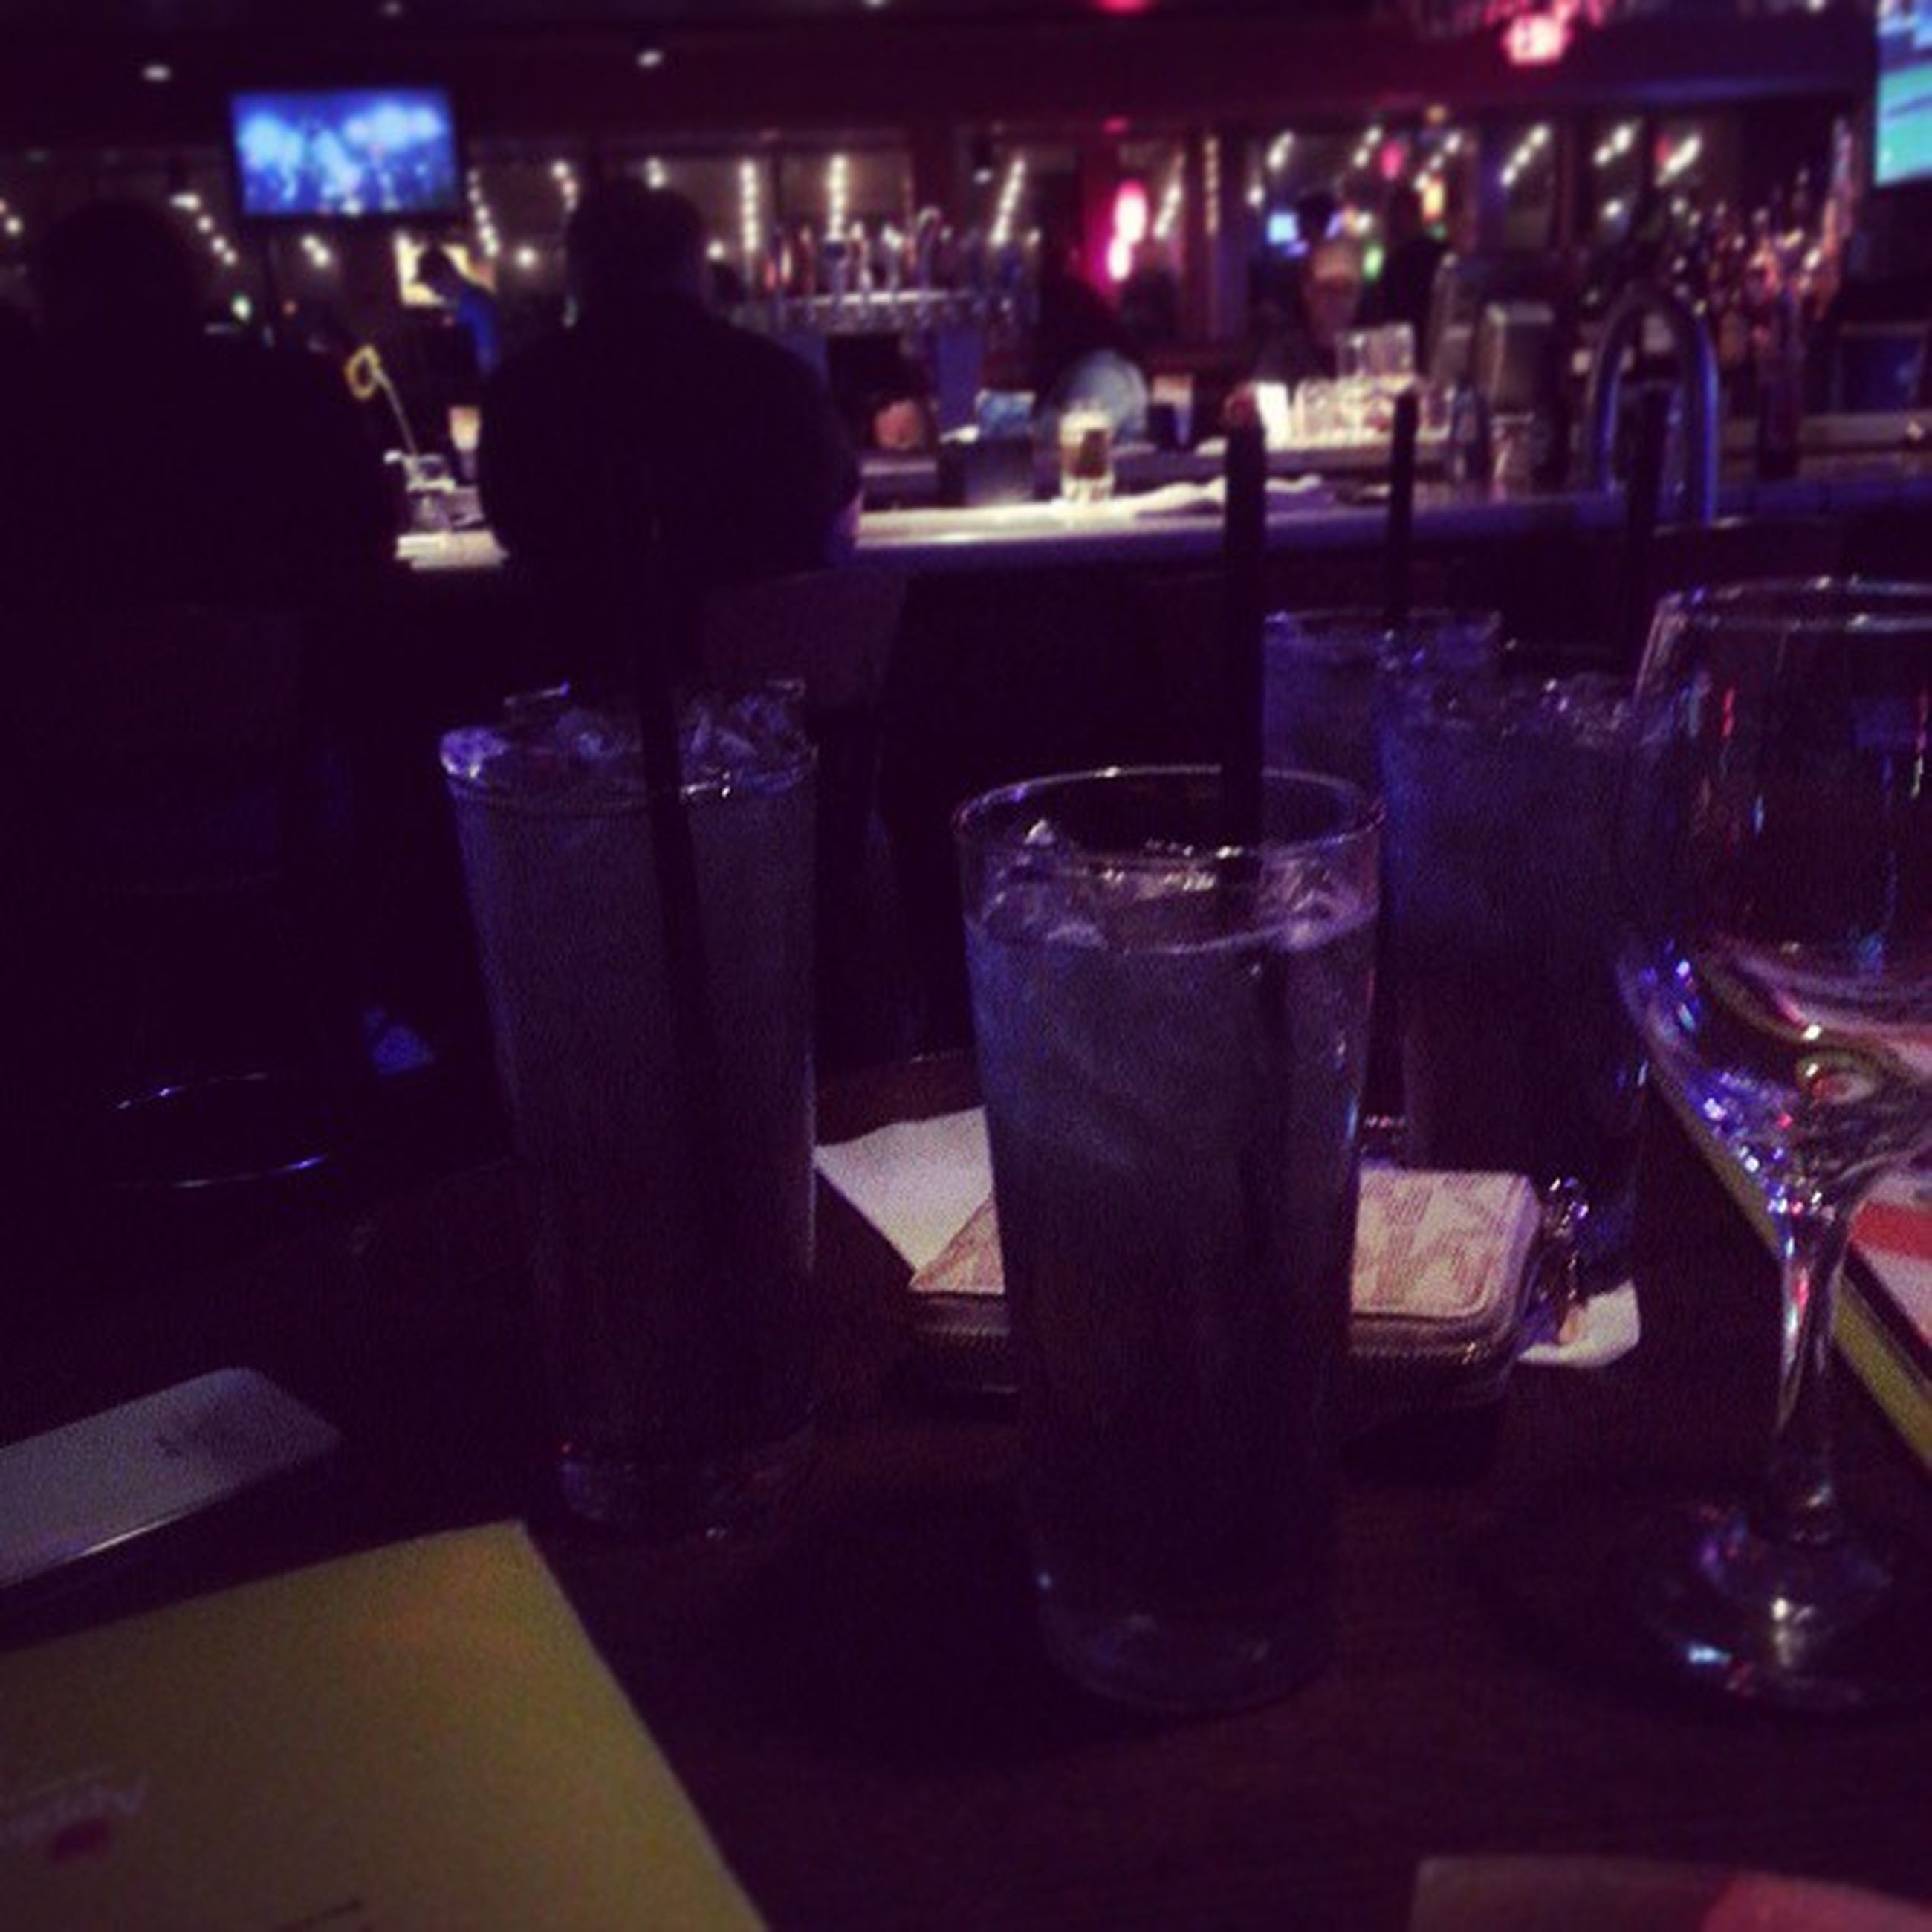 food and drink, indoors, drink, restaurant, table, drinking glass, refreshment, incidental people, freshness, night, alcohol, focus on foreground, glass - material, food, illuminated, wineglass, close-up, lifestyles, still life